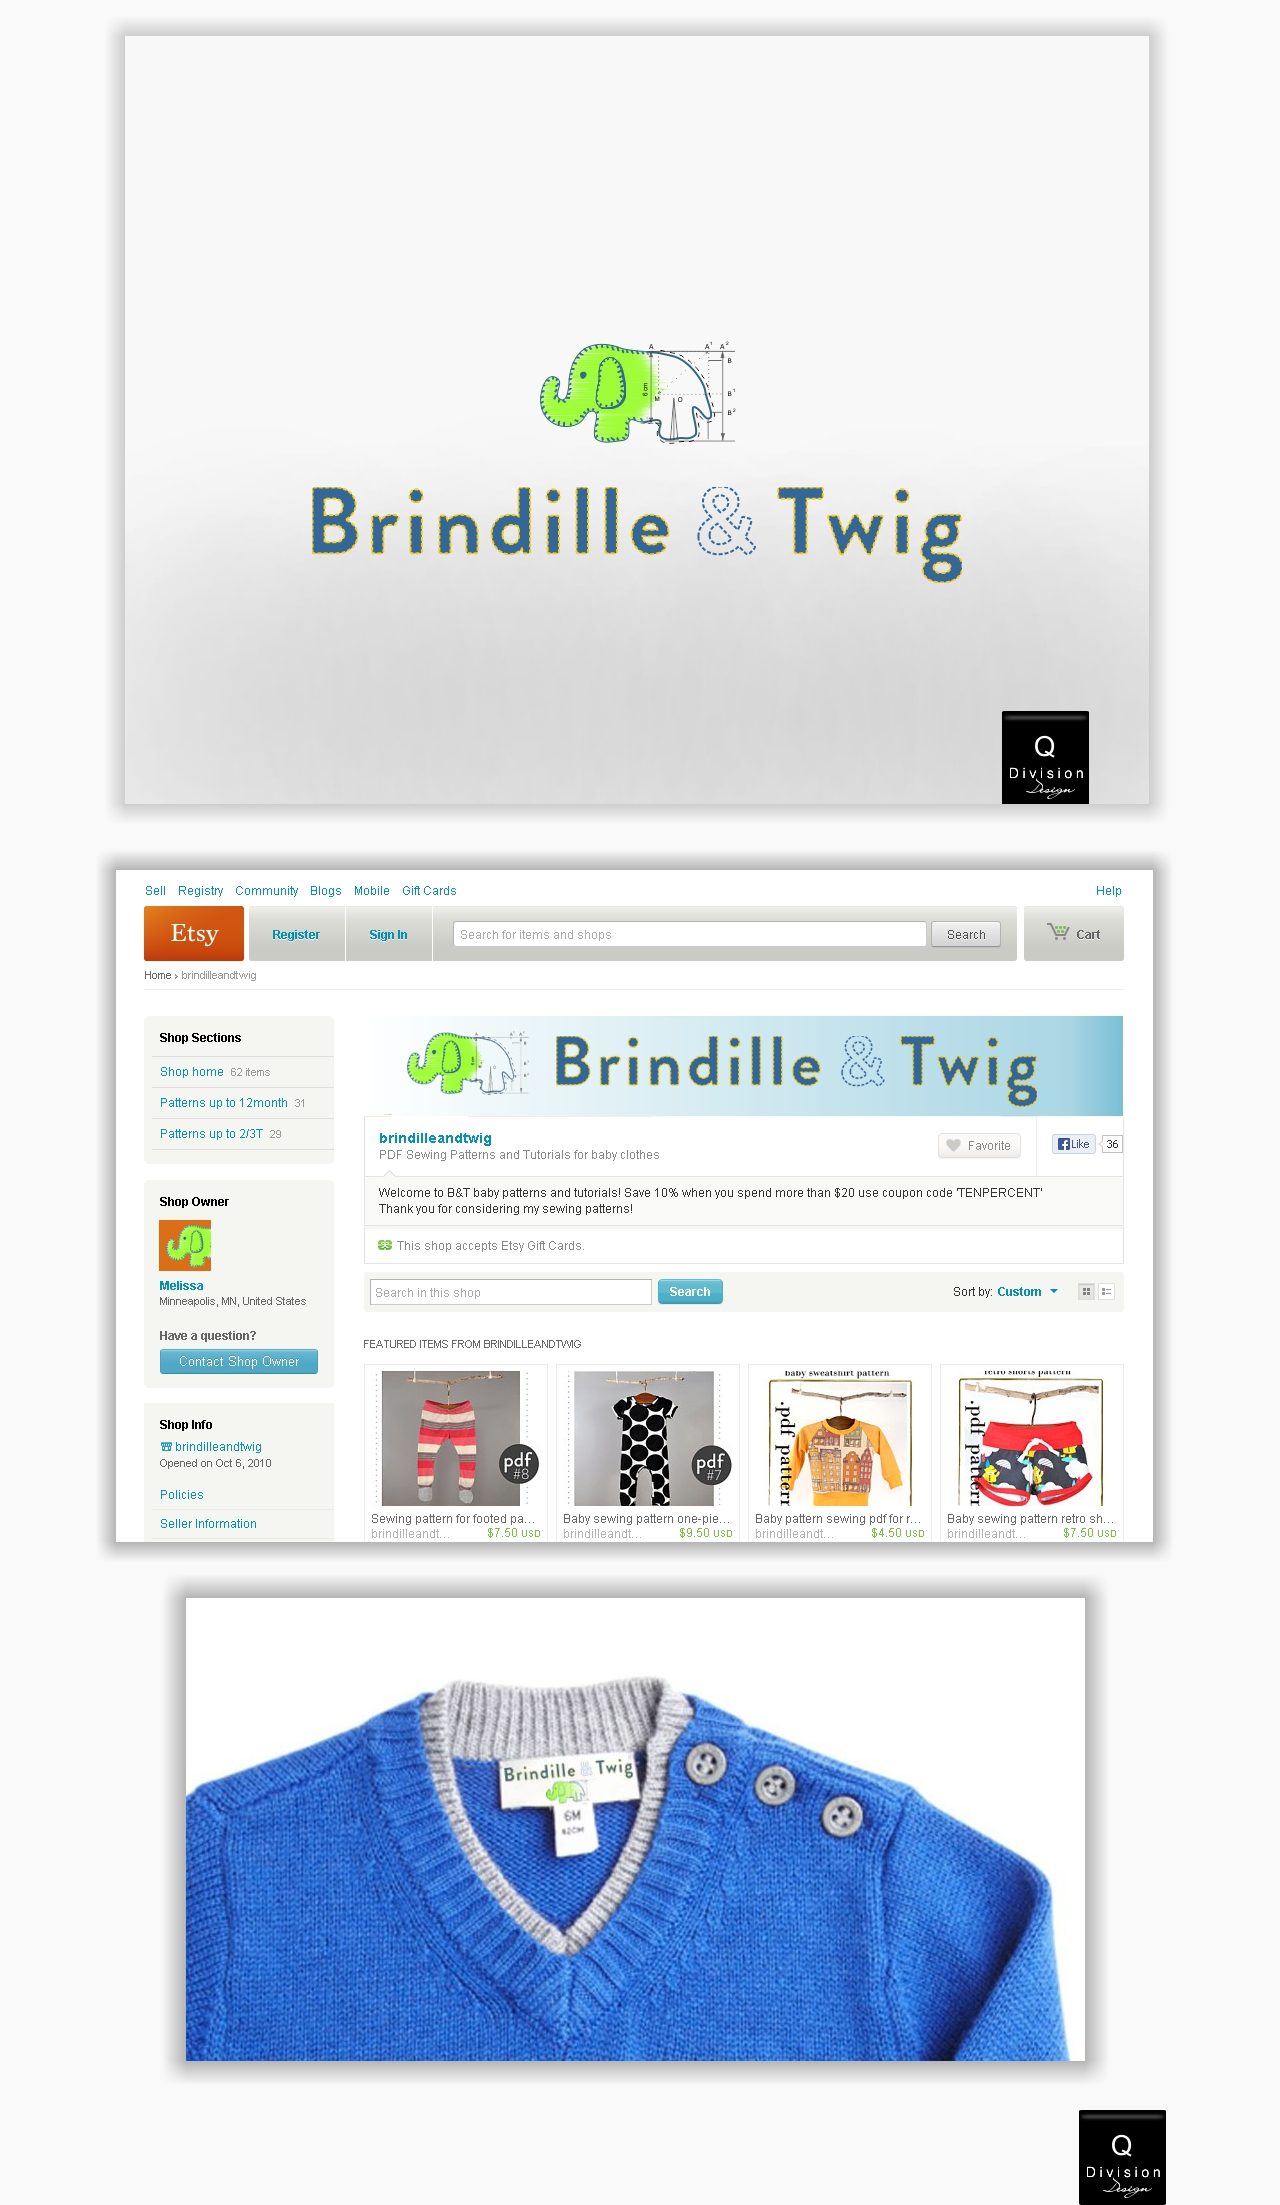 Logo Design by Q_Division_Designs - Entry No. 18 in the Logo Design Contest Logo Design for Brindille & Twig.